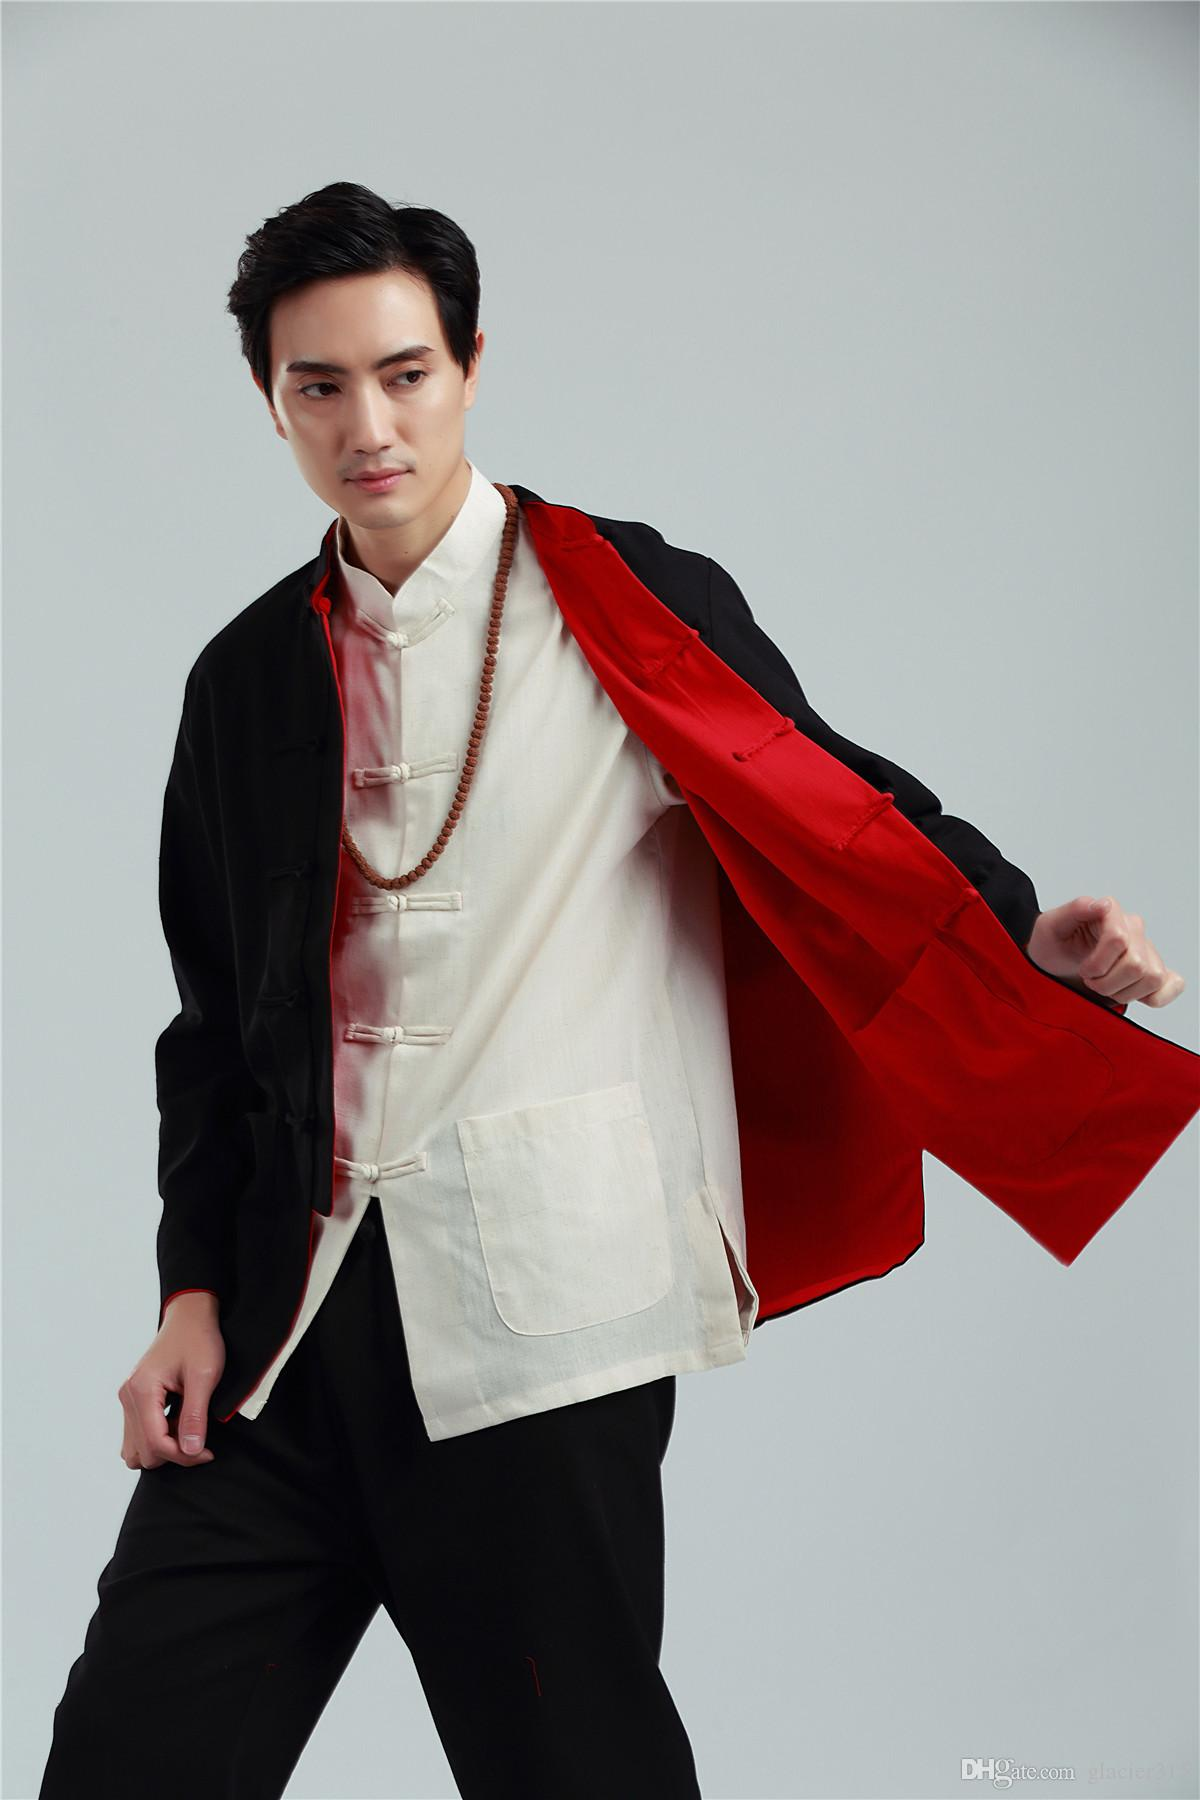 to wear - Clothing Chinese for men video